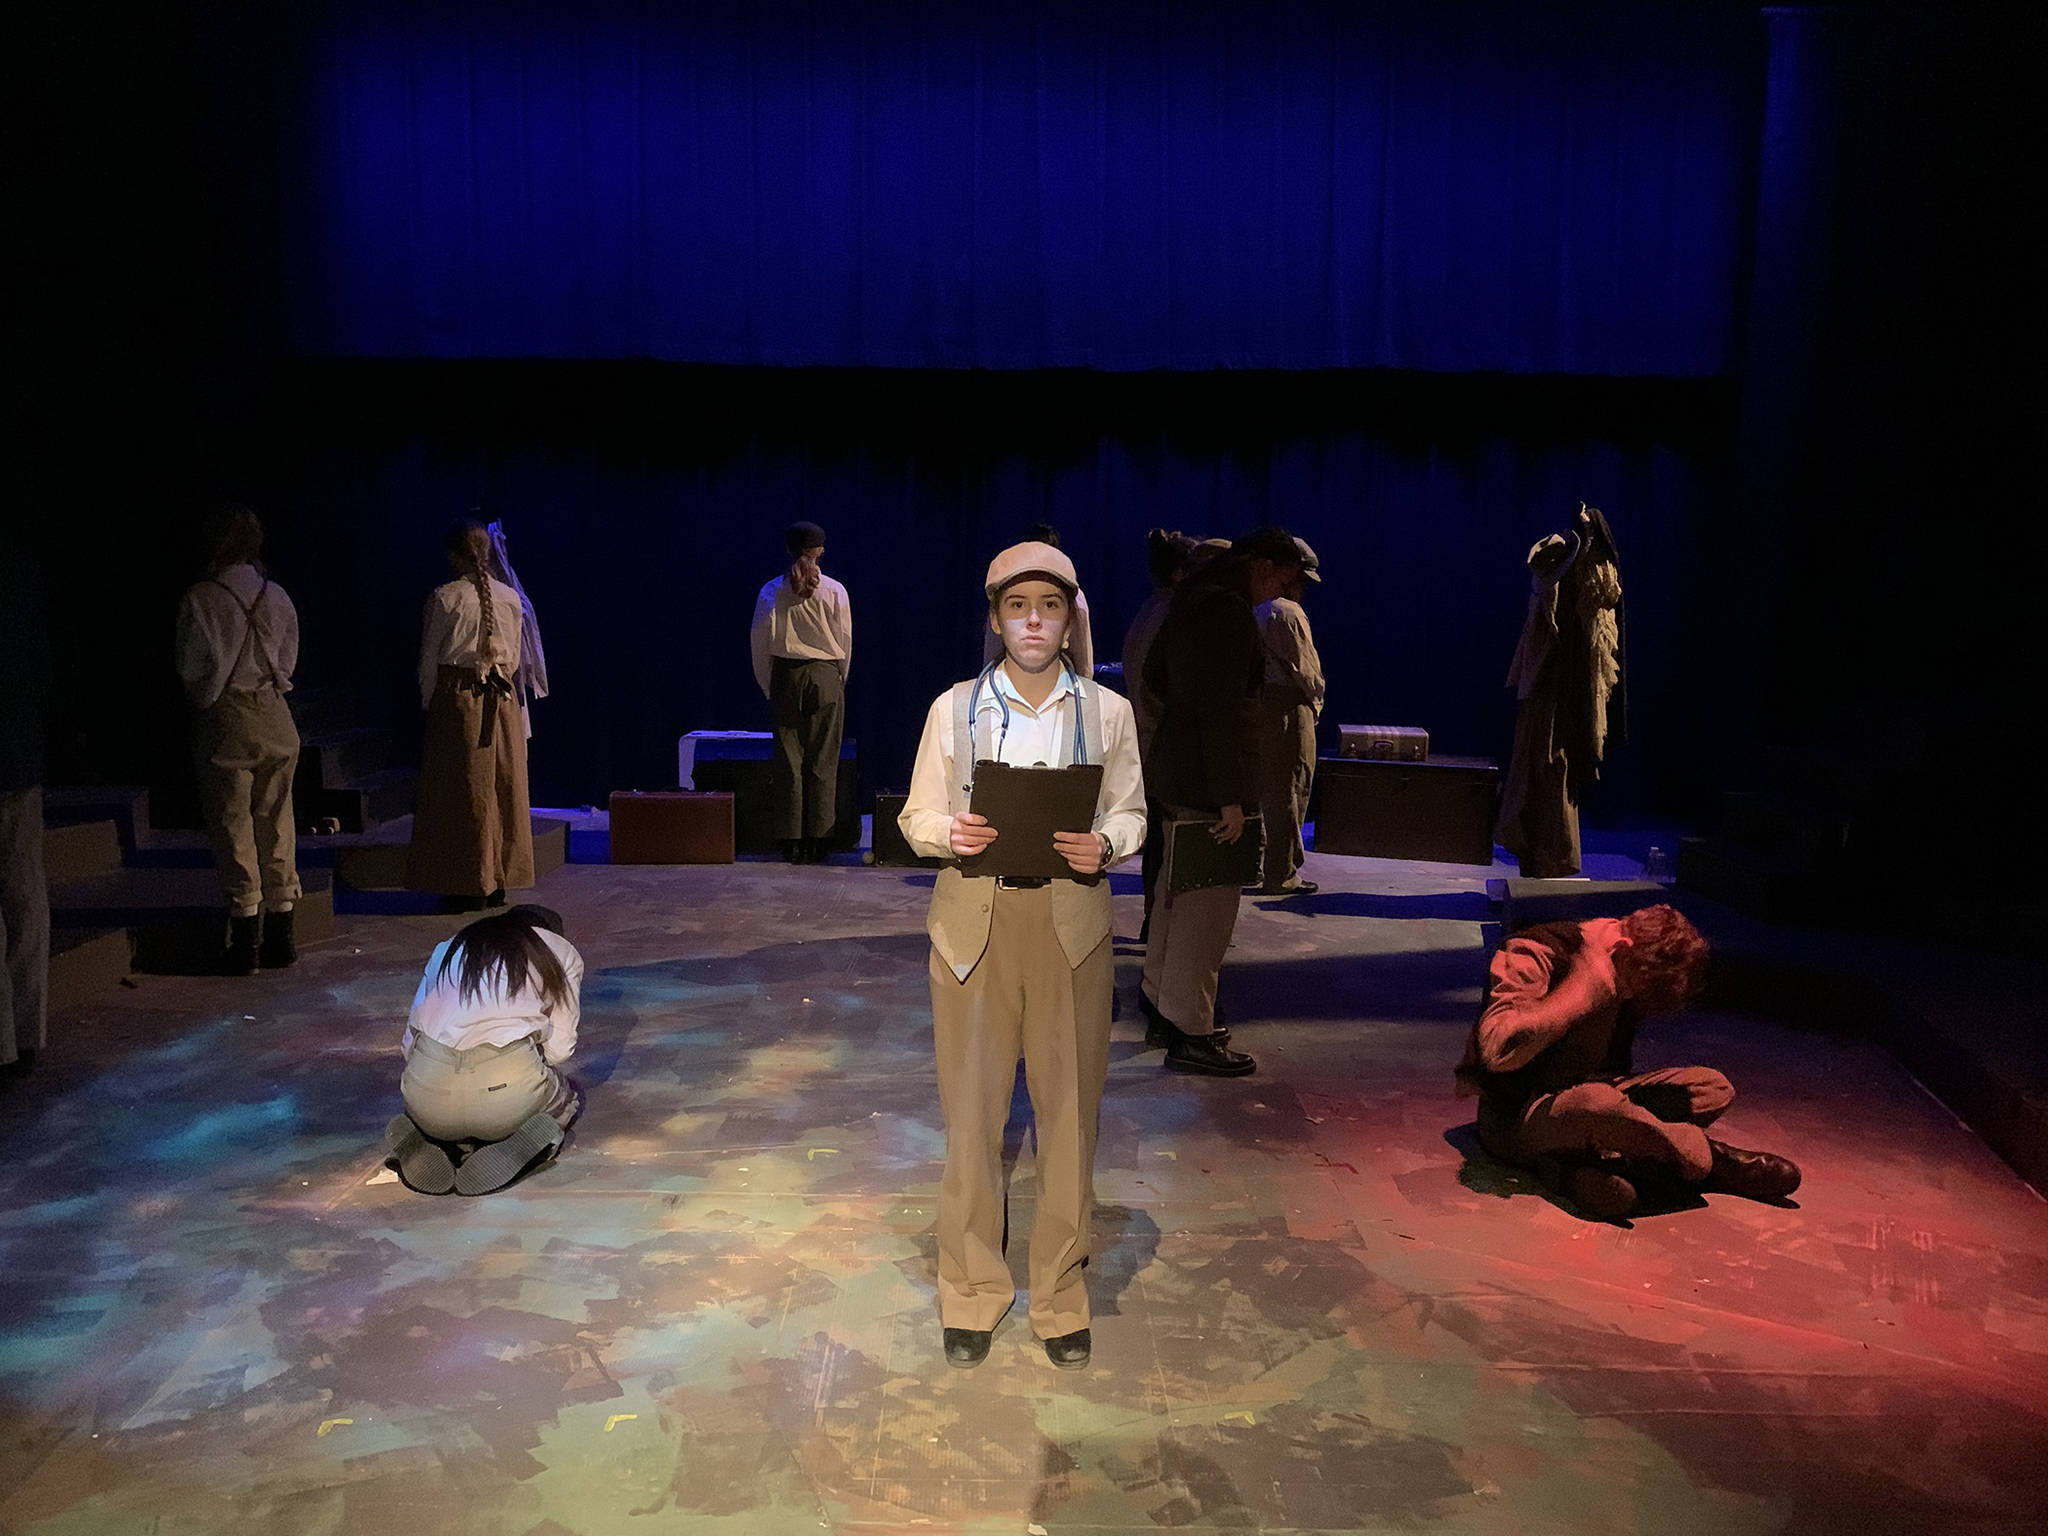 Seaton Secondary's 27th Street Theatre Company presents Seeds of Hope: A Story of Ukrainian Internment in Canada, streaming Feb. 12-15 through ticketseller.ca. (27th Street Theatre photo)